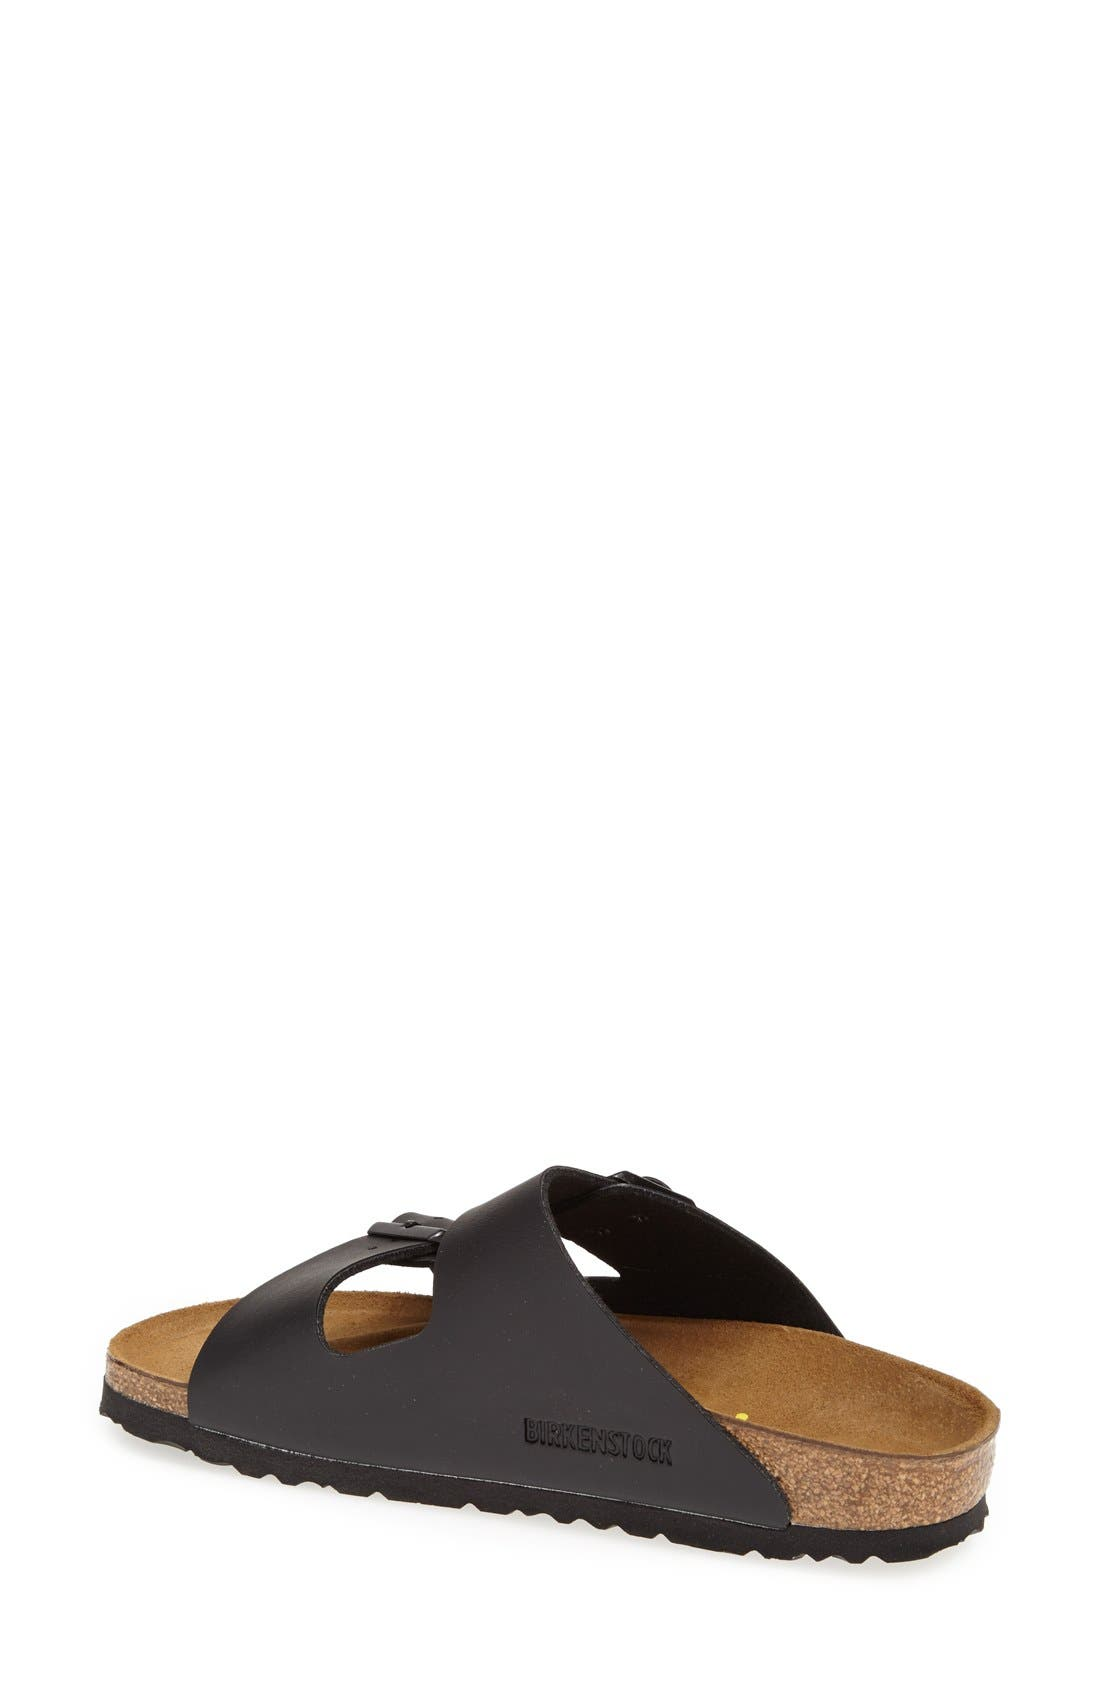 Alternate Image 2  - Birkenstock Arizona Birko-Flor Sandal (Women)